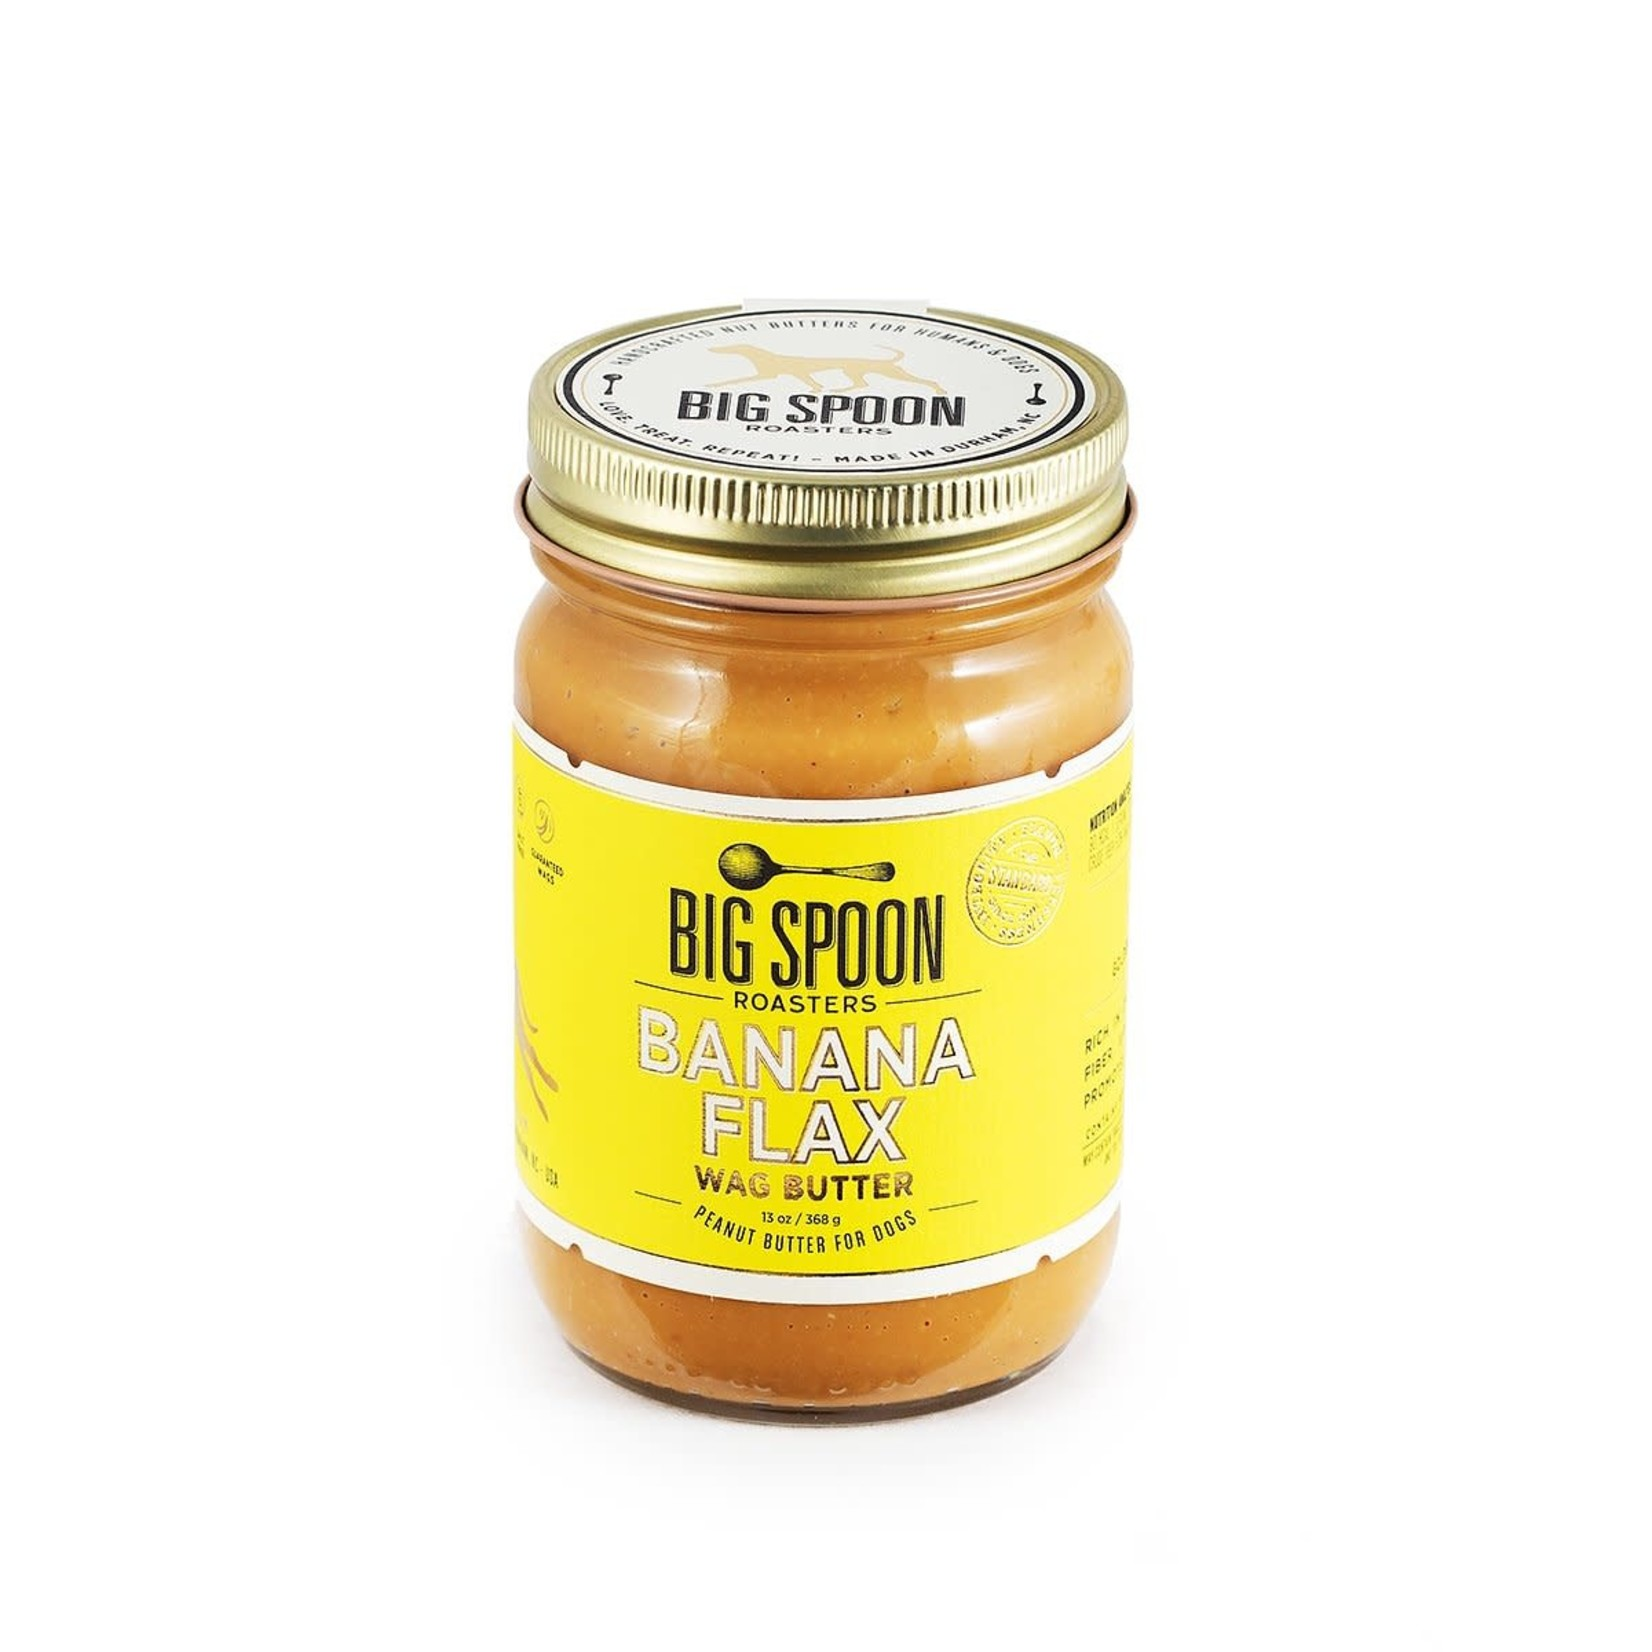 Big Spoon Roasters Wag Butter